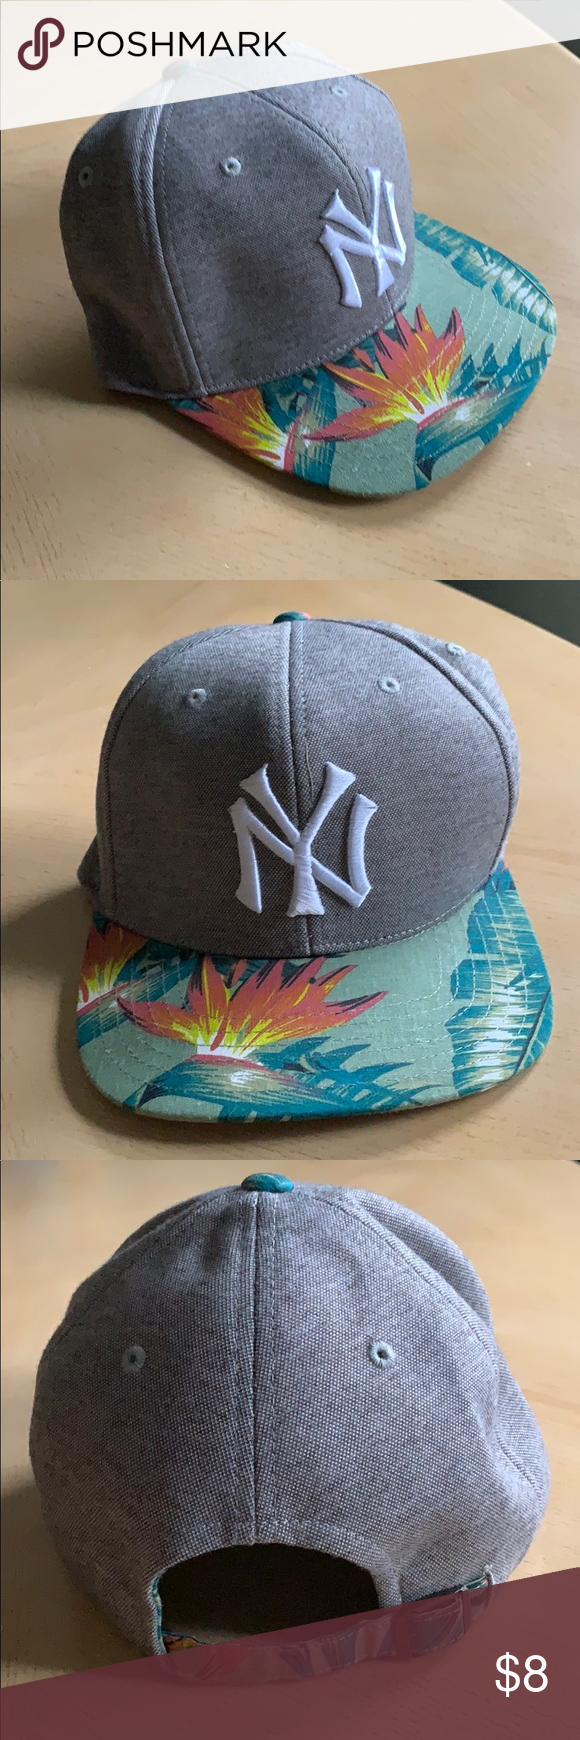 American Needle Ny Yankees Fitted Baseball Hat Baseball Hats American Needle Ny Yankees